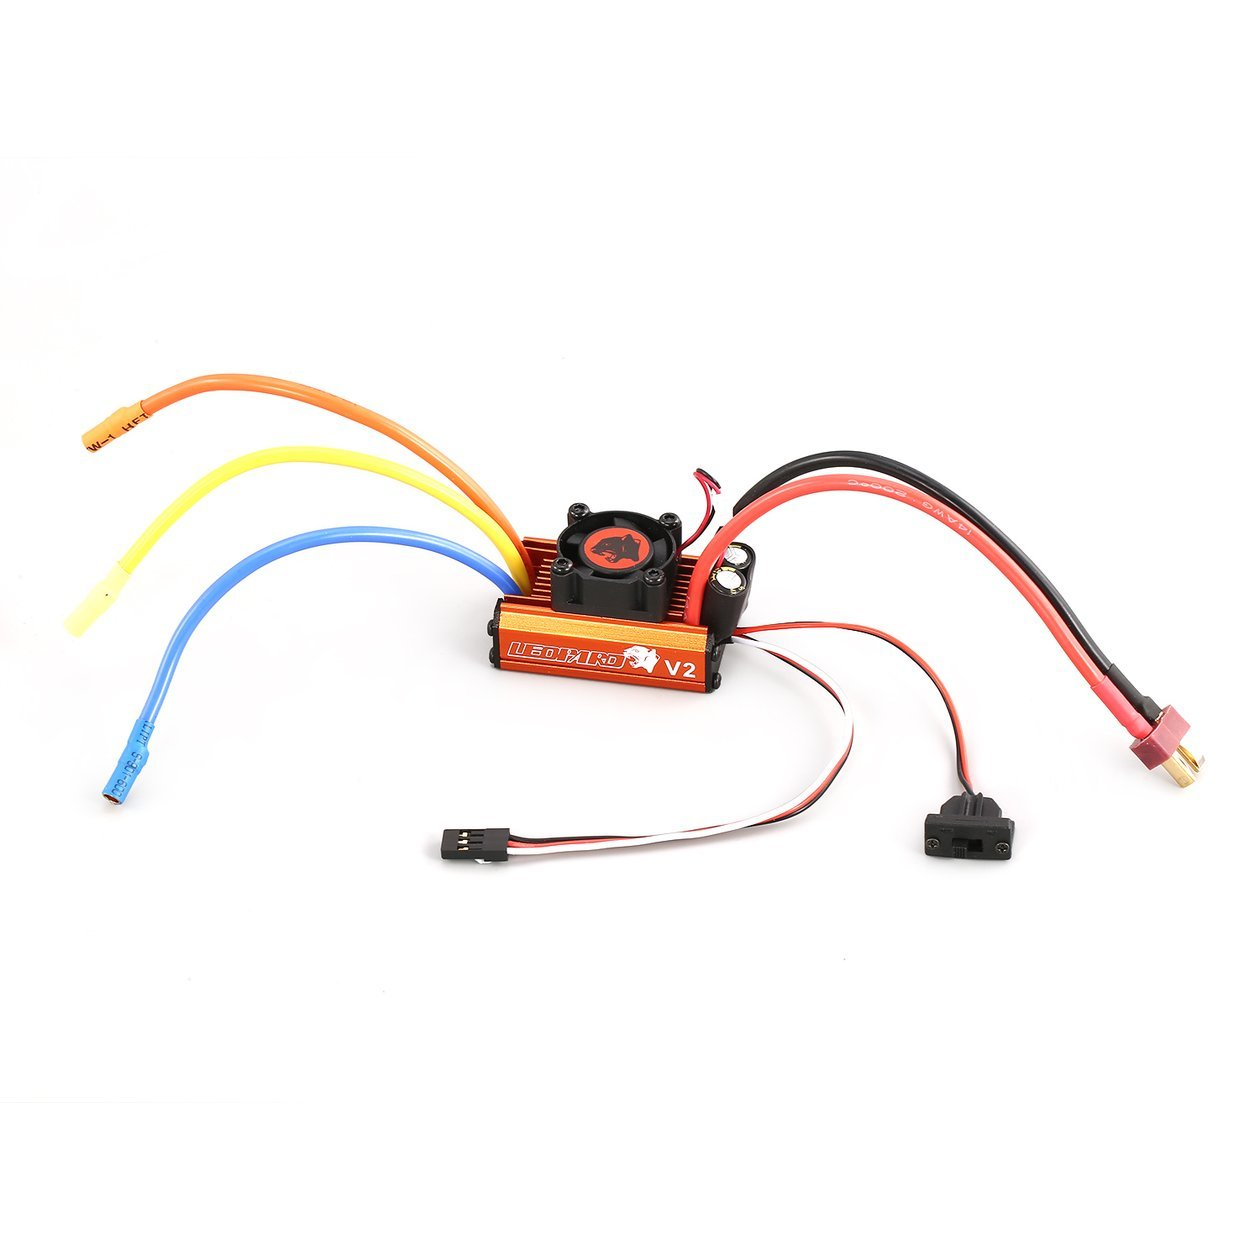 for 1/10 RC Car Truck 9T 4370KV Brushless Motor 60A Brushless ESC